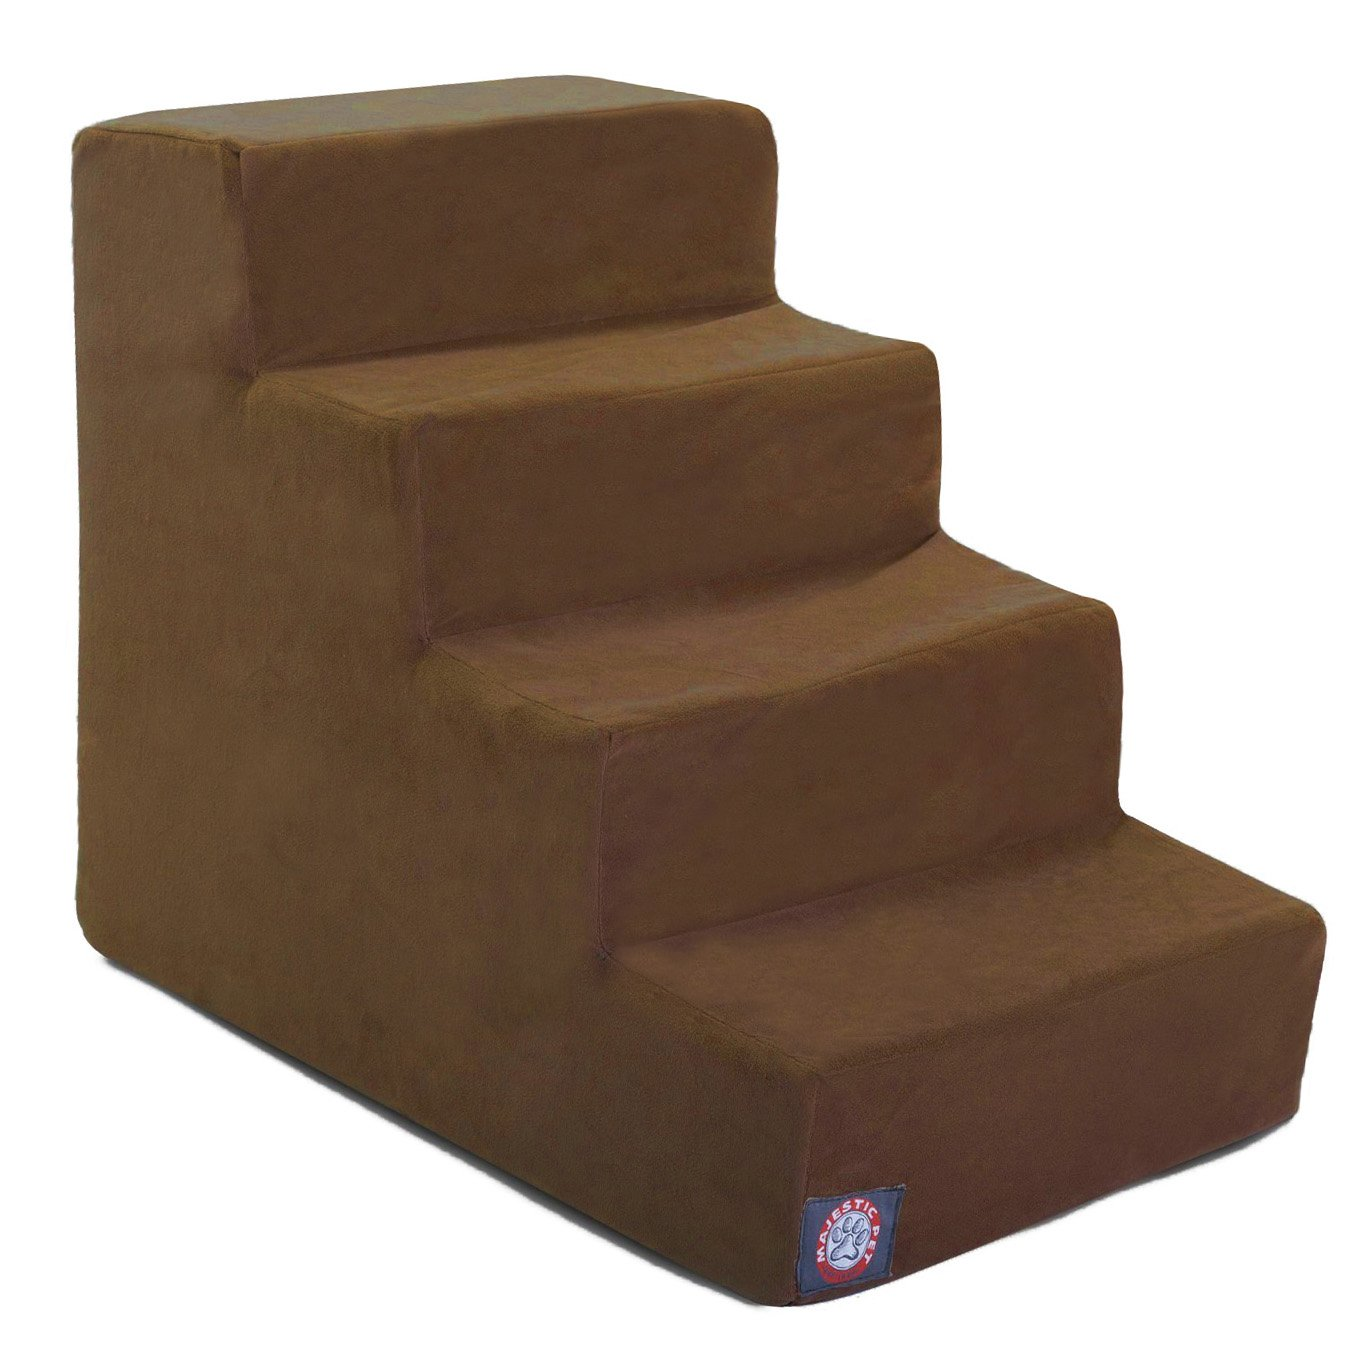 4 Step Chocolate Brown Suede Pet Stairs By Majestic Pet Products by Majestic Pet